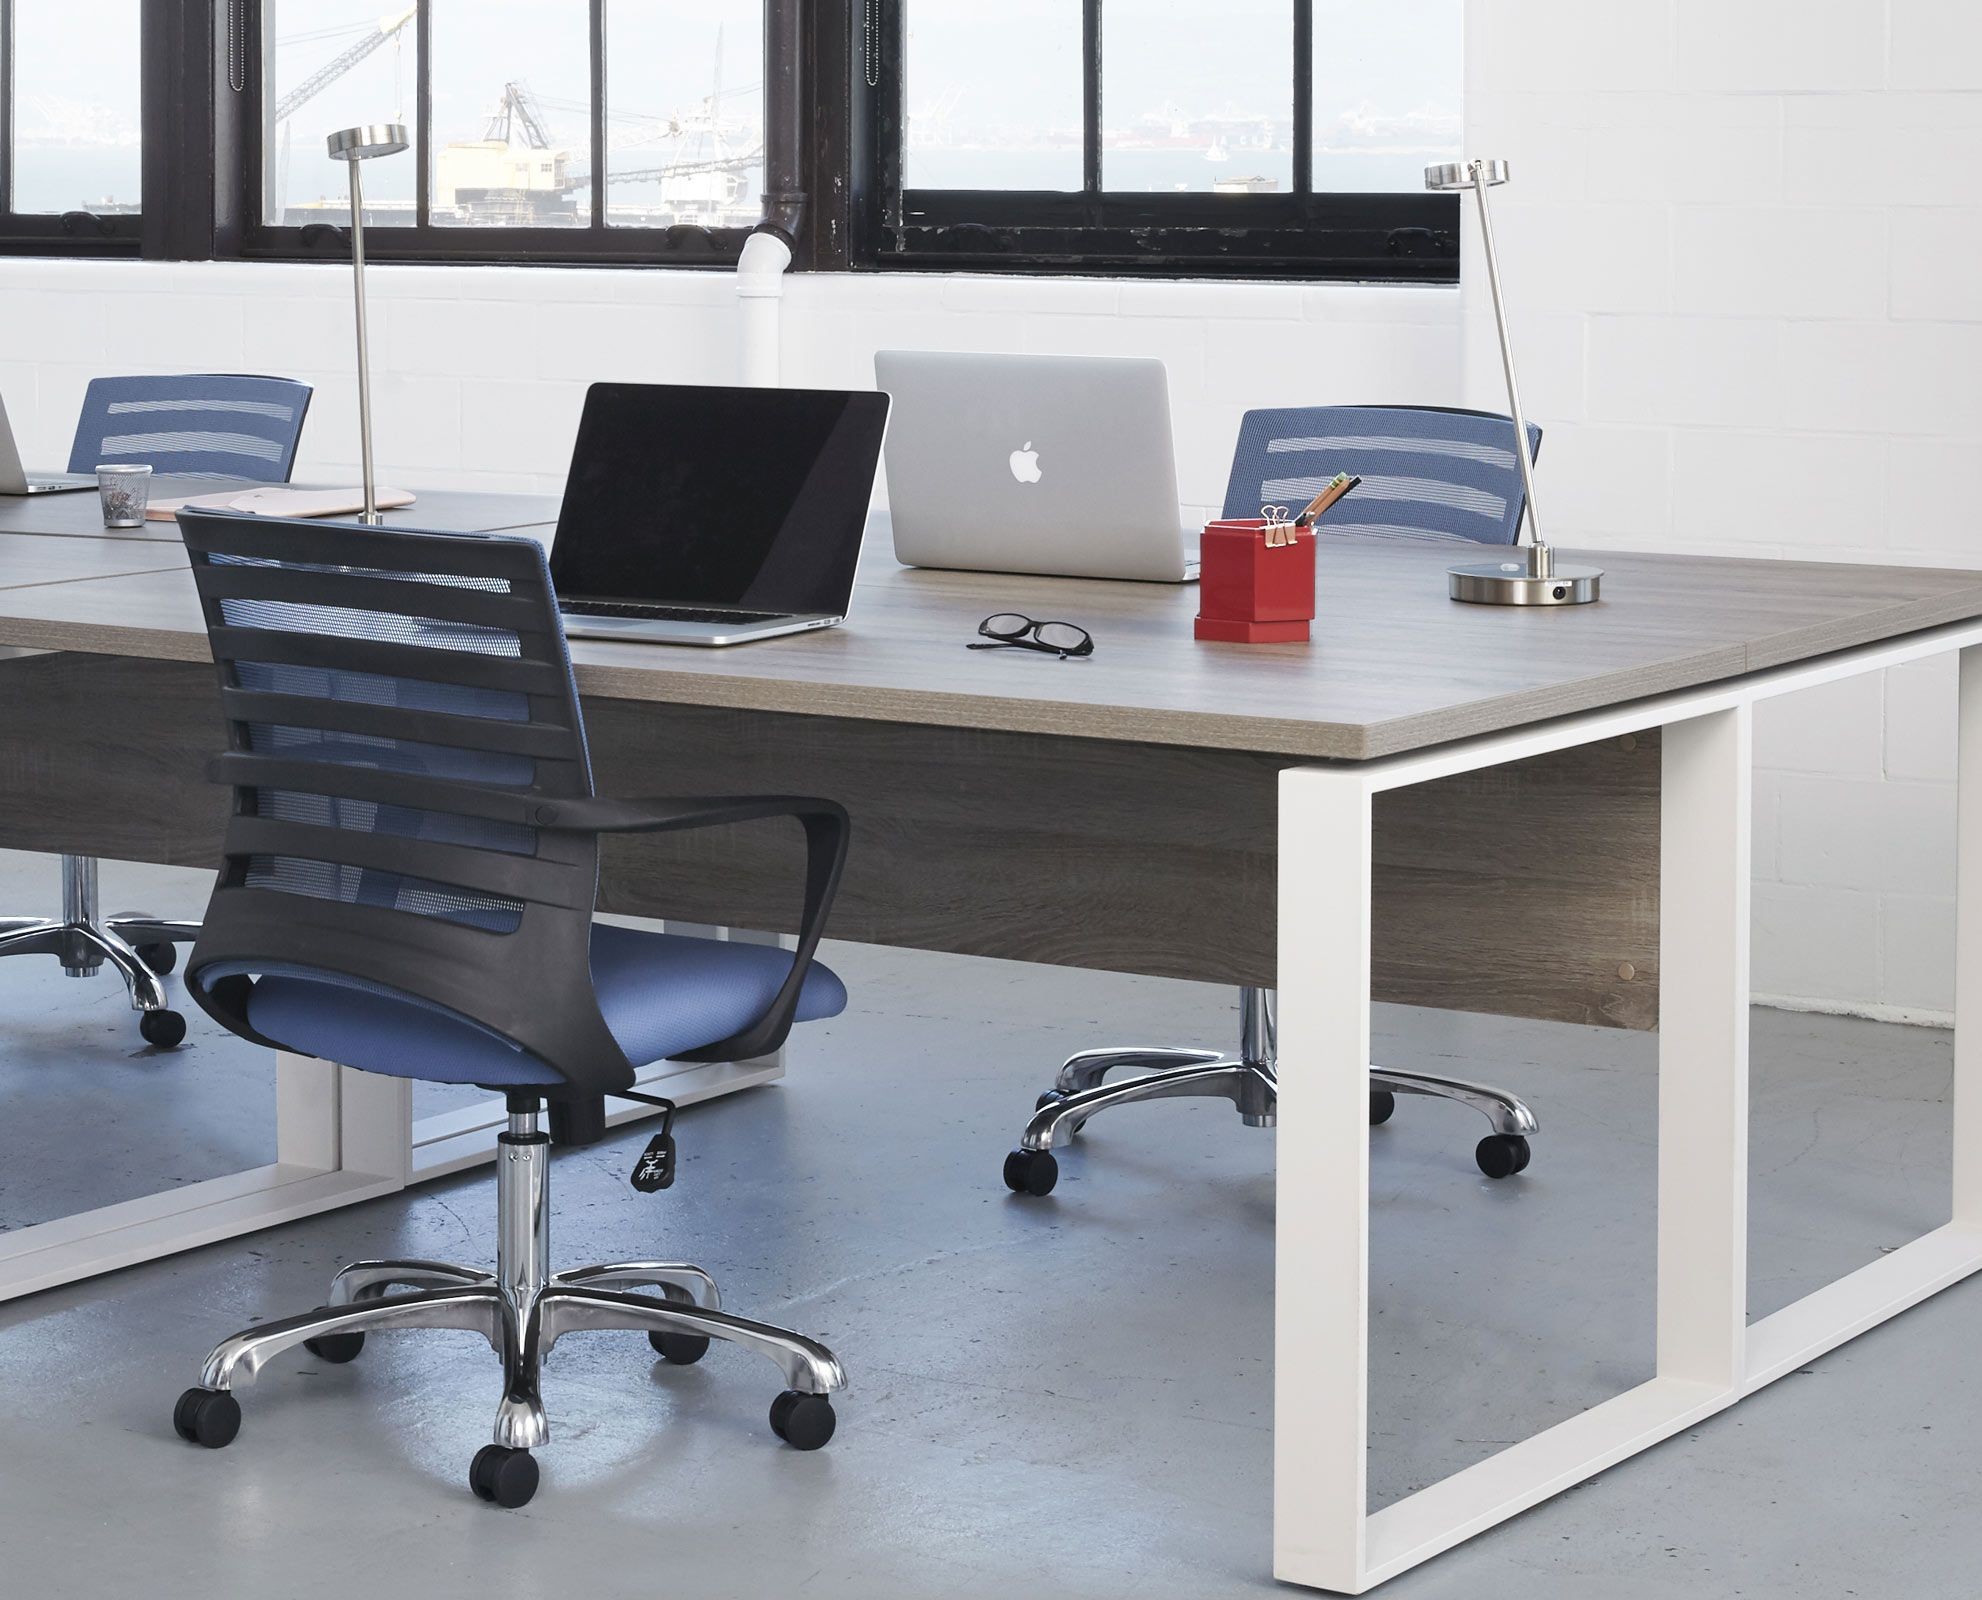 Add A Pop Of Color To Your Office Setting With The Barrier Desk Chair From  Scandinavian Designs. The Mesh Backrest Provides Breathability, ...